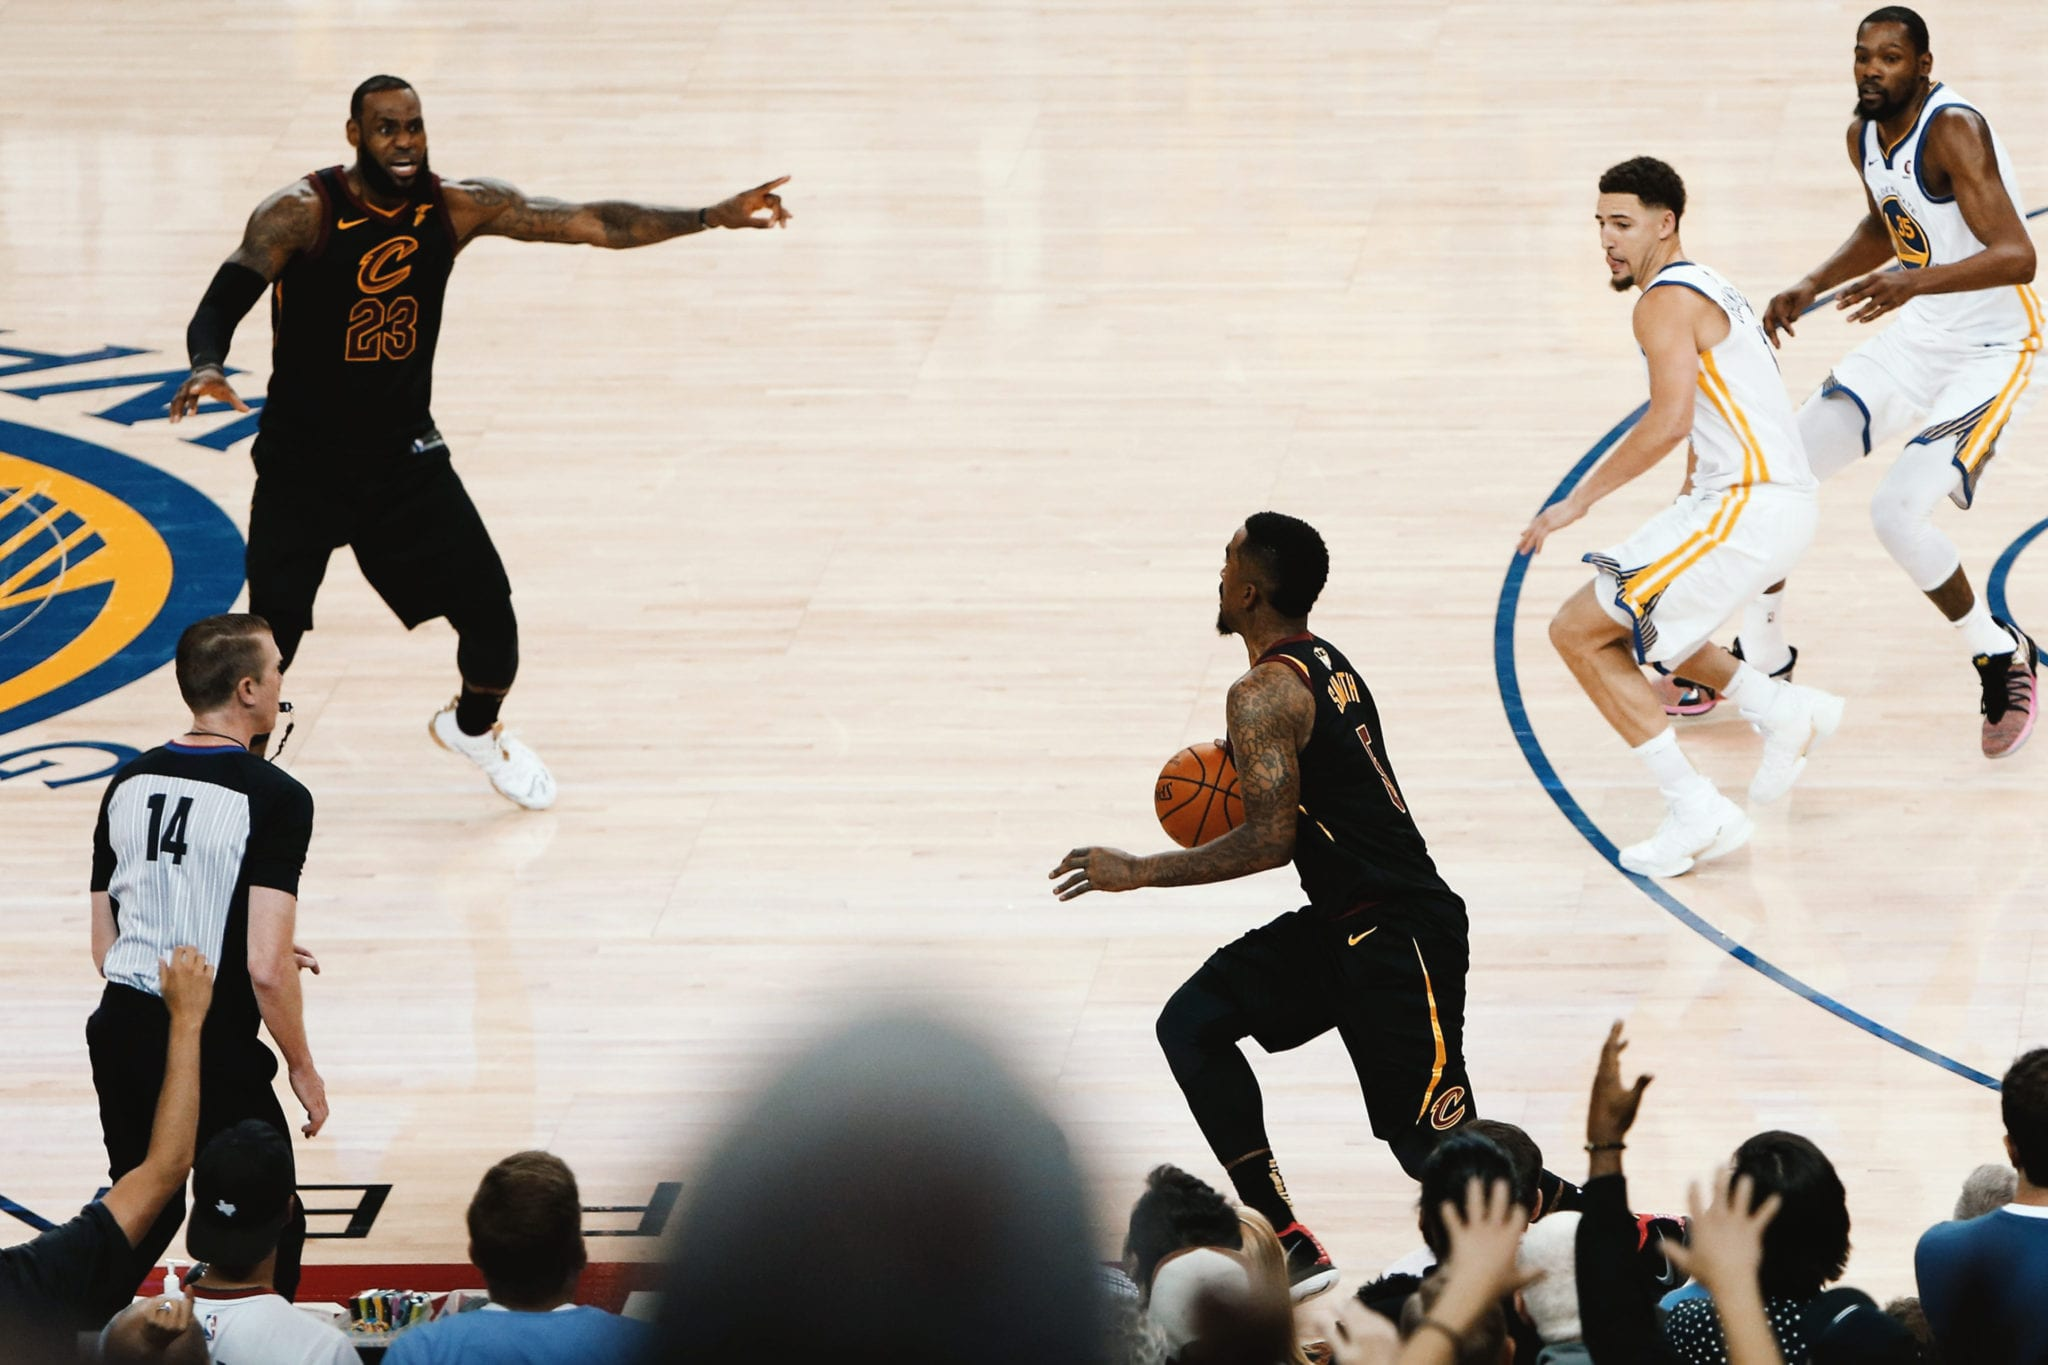 WRONG WAY: LeBron James watches his 51-point performance in Game 1 of the 2018 NBA Finals go up in flames as JR Smith inexplicably runs away from Cleveland's basket in the dying seconds of the game (May 31, 2018).